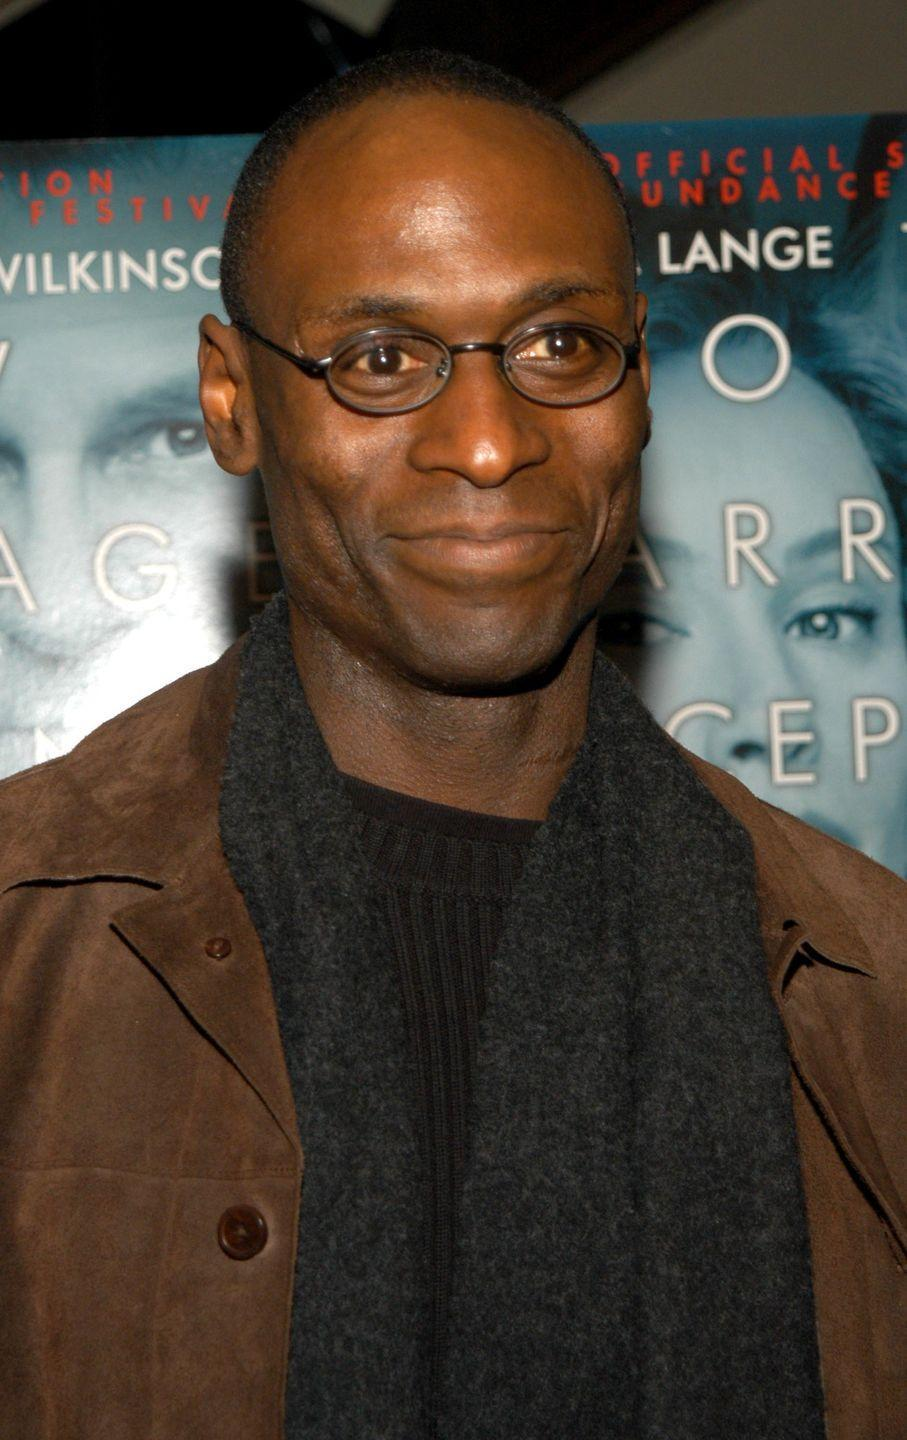 """<p>The Baltimore native was cast as Cedric Daniels, a motivated but conflicted and career-minded police officer. Reddick says he auditioned four times—three of which he actually read for Bunk Moreland and Bubbles. He didn't find out he landed the part until and after his agent had been told that he <em>didn't</em> get the part.</p><p>""""I still don't know what happened. I thought it was a dead issue when I got the call. Literally, I thought I was dreaming. It's the only time in my life I really wondered, 'Am I dreaming this?' Because, it was like my life changed after that,"""" he told <a href=""""http://www.hobotrashcan.com/2005/10/25/one-on-one-with-lance-reddick-2/"""" rel=""""nofollow noopener"""" target=""""_blank"""" data-ylk=""""slk:Hobo Trash Can"""" class=""""link rapid-noclick-resp"""">Hobo Trash Can</a>.</p>"""